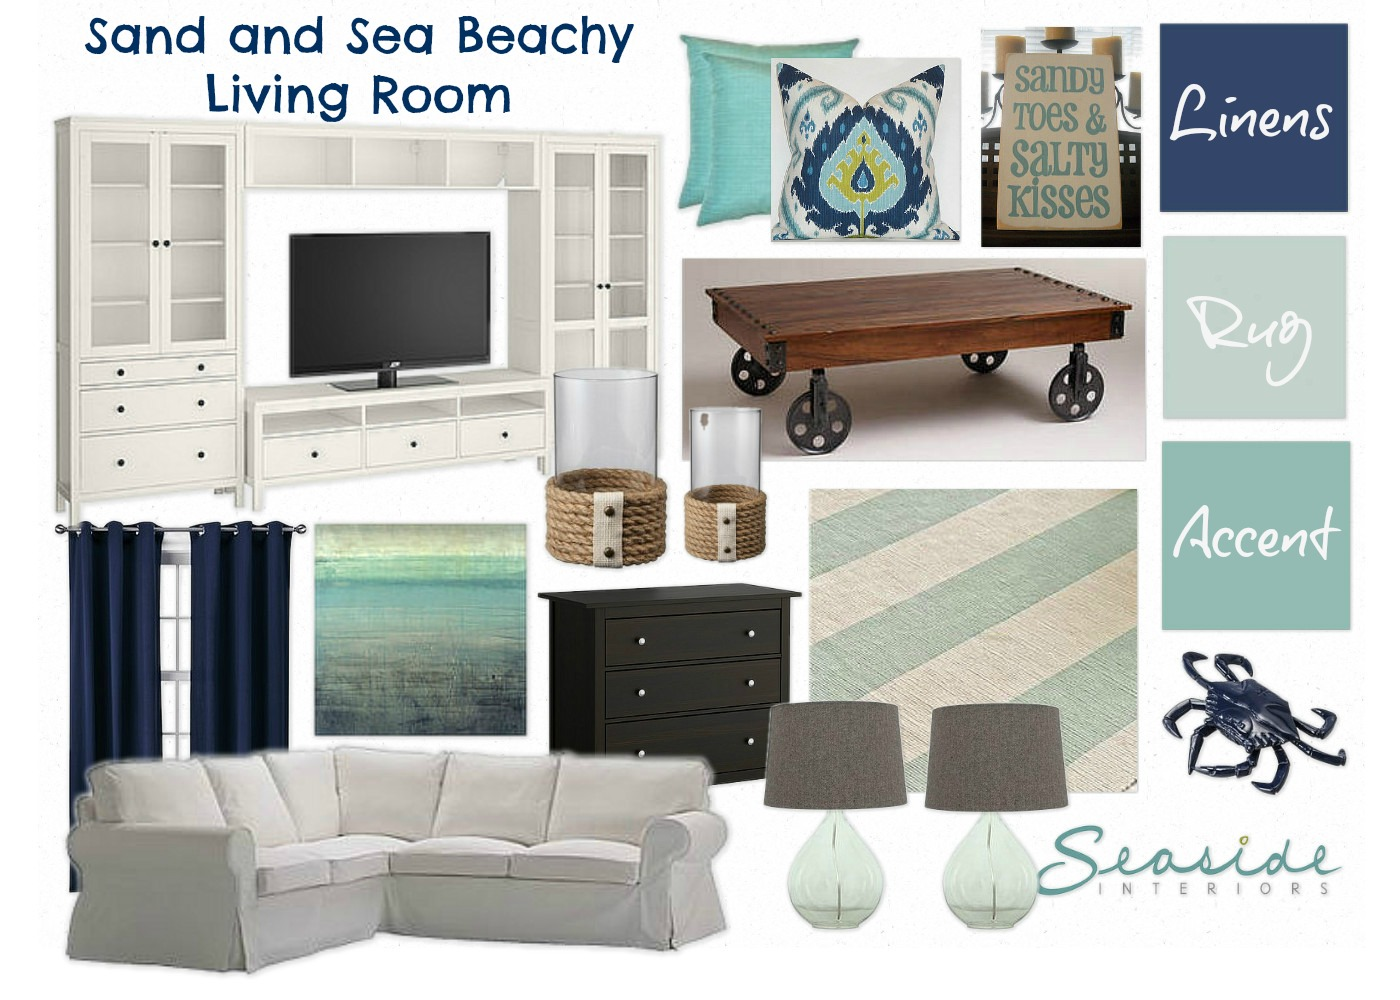 Seaside Interiors: Sand and Sea Beachy Living Room in Navy and ...